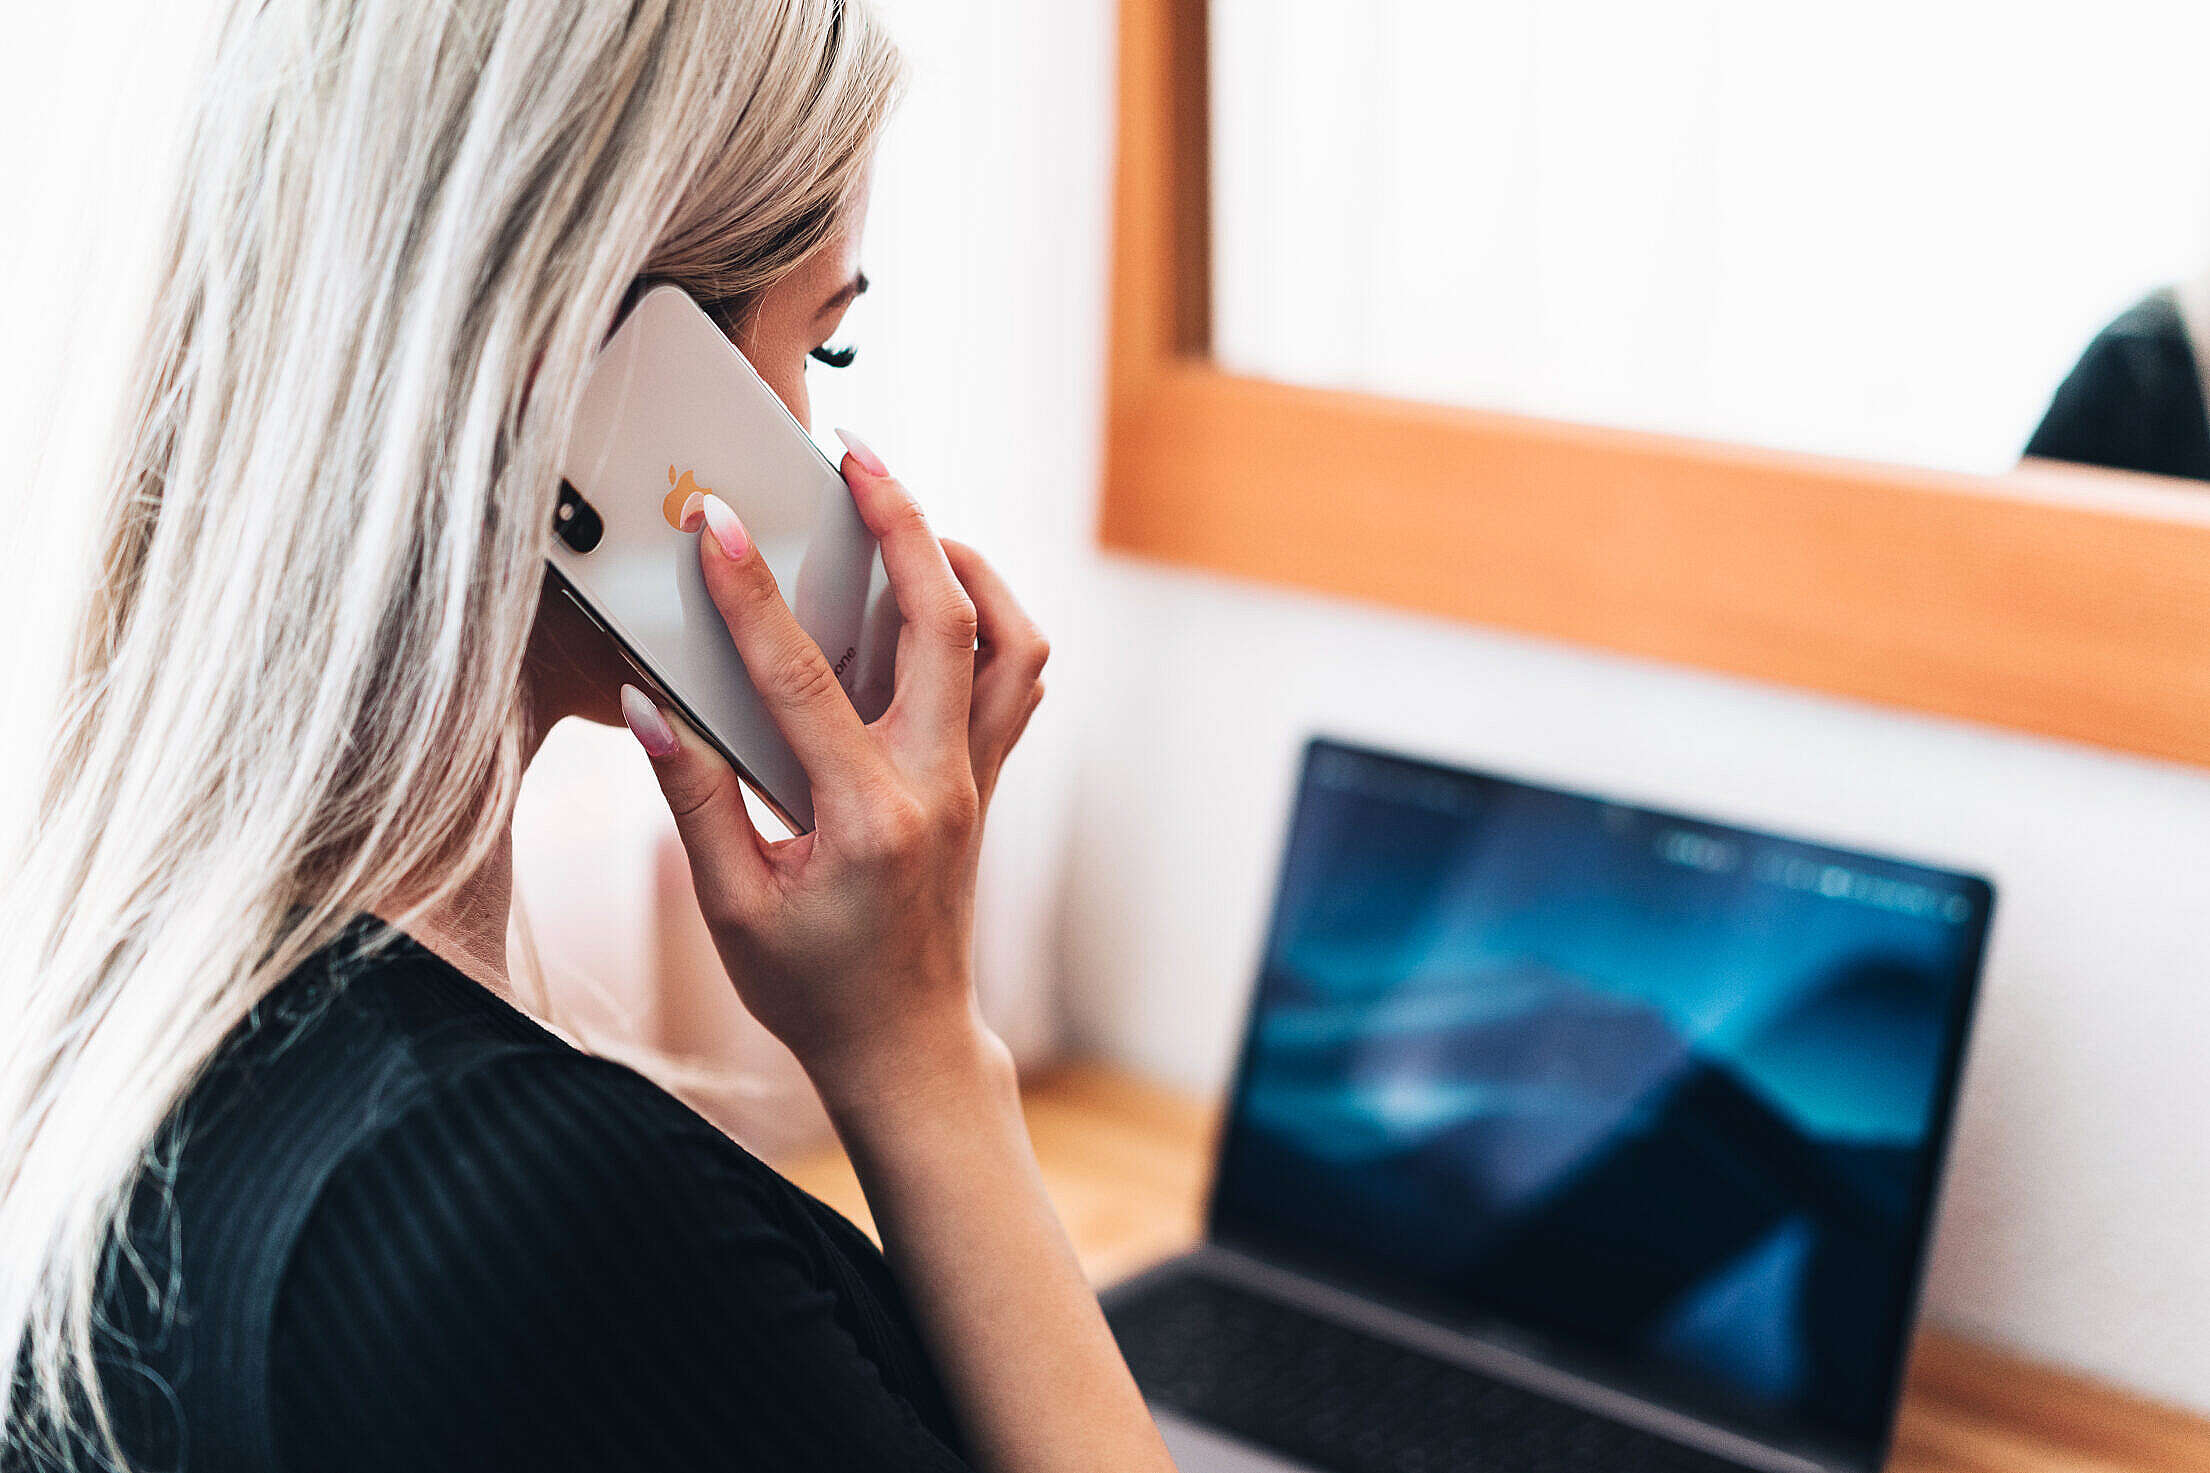 Solopreneur Call Support for Her Small Business Free Stock Photo